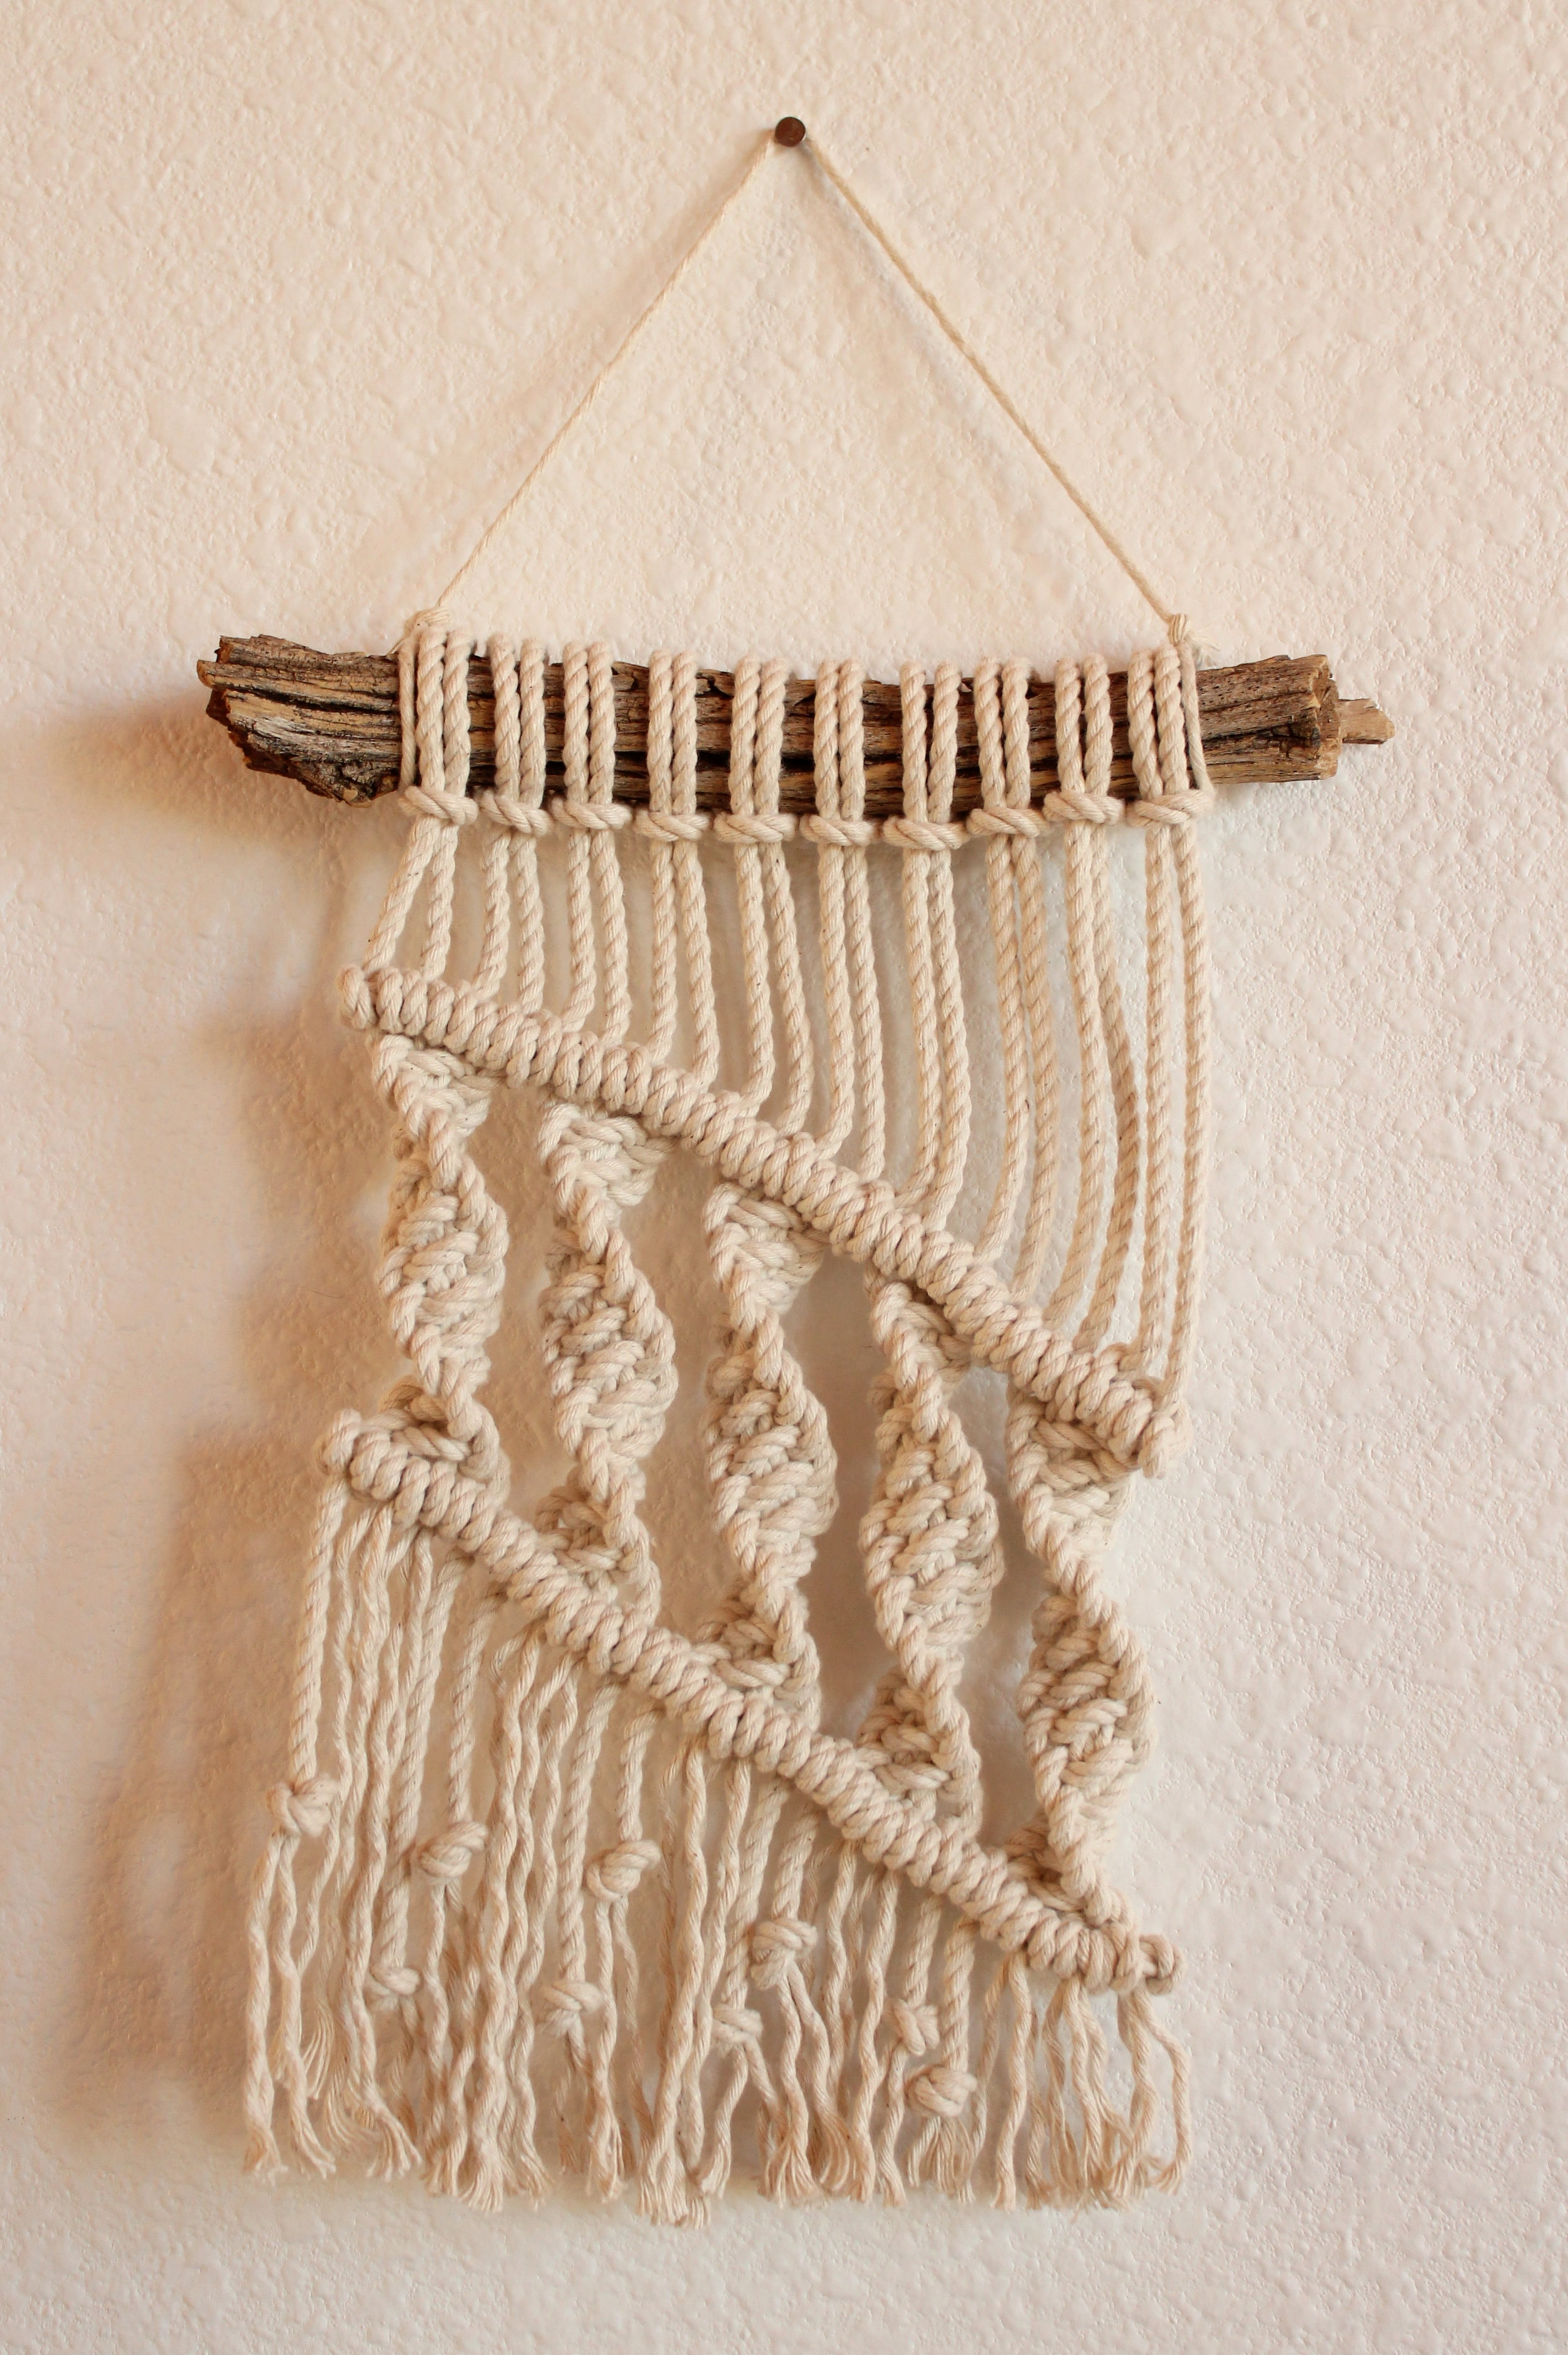 STRENGTHEN THE FEEBLE MACRAME WALL HANGING